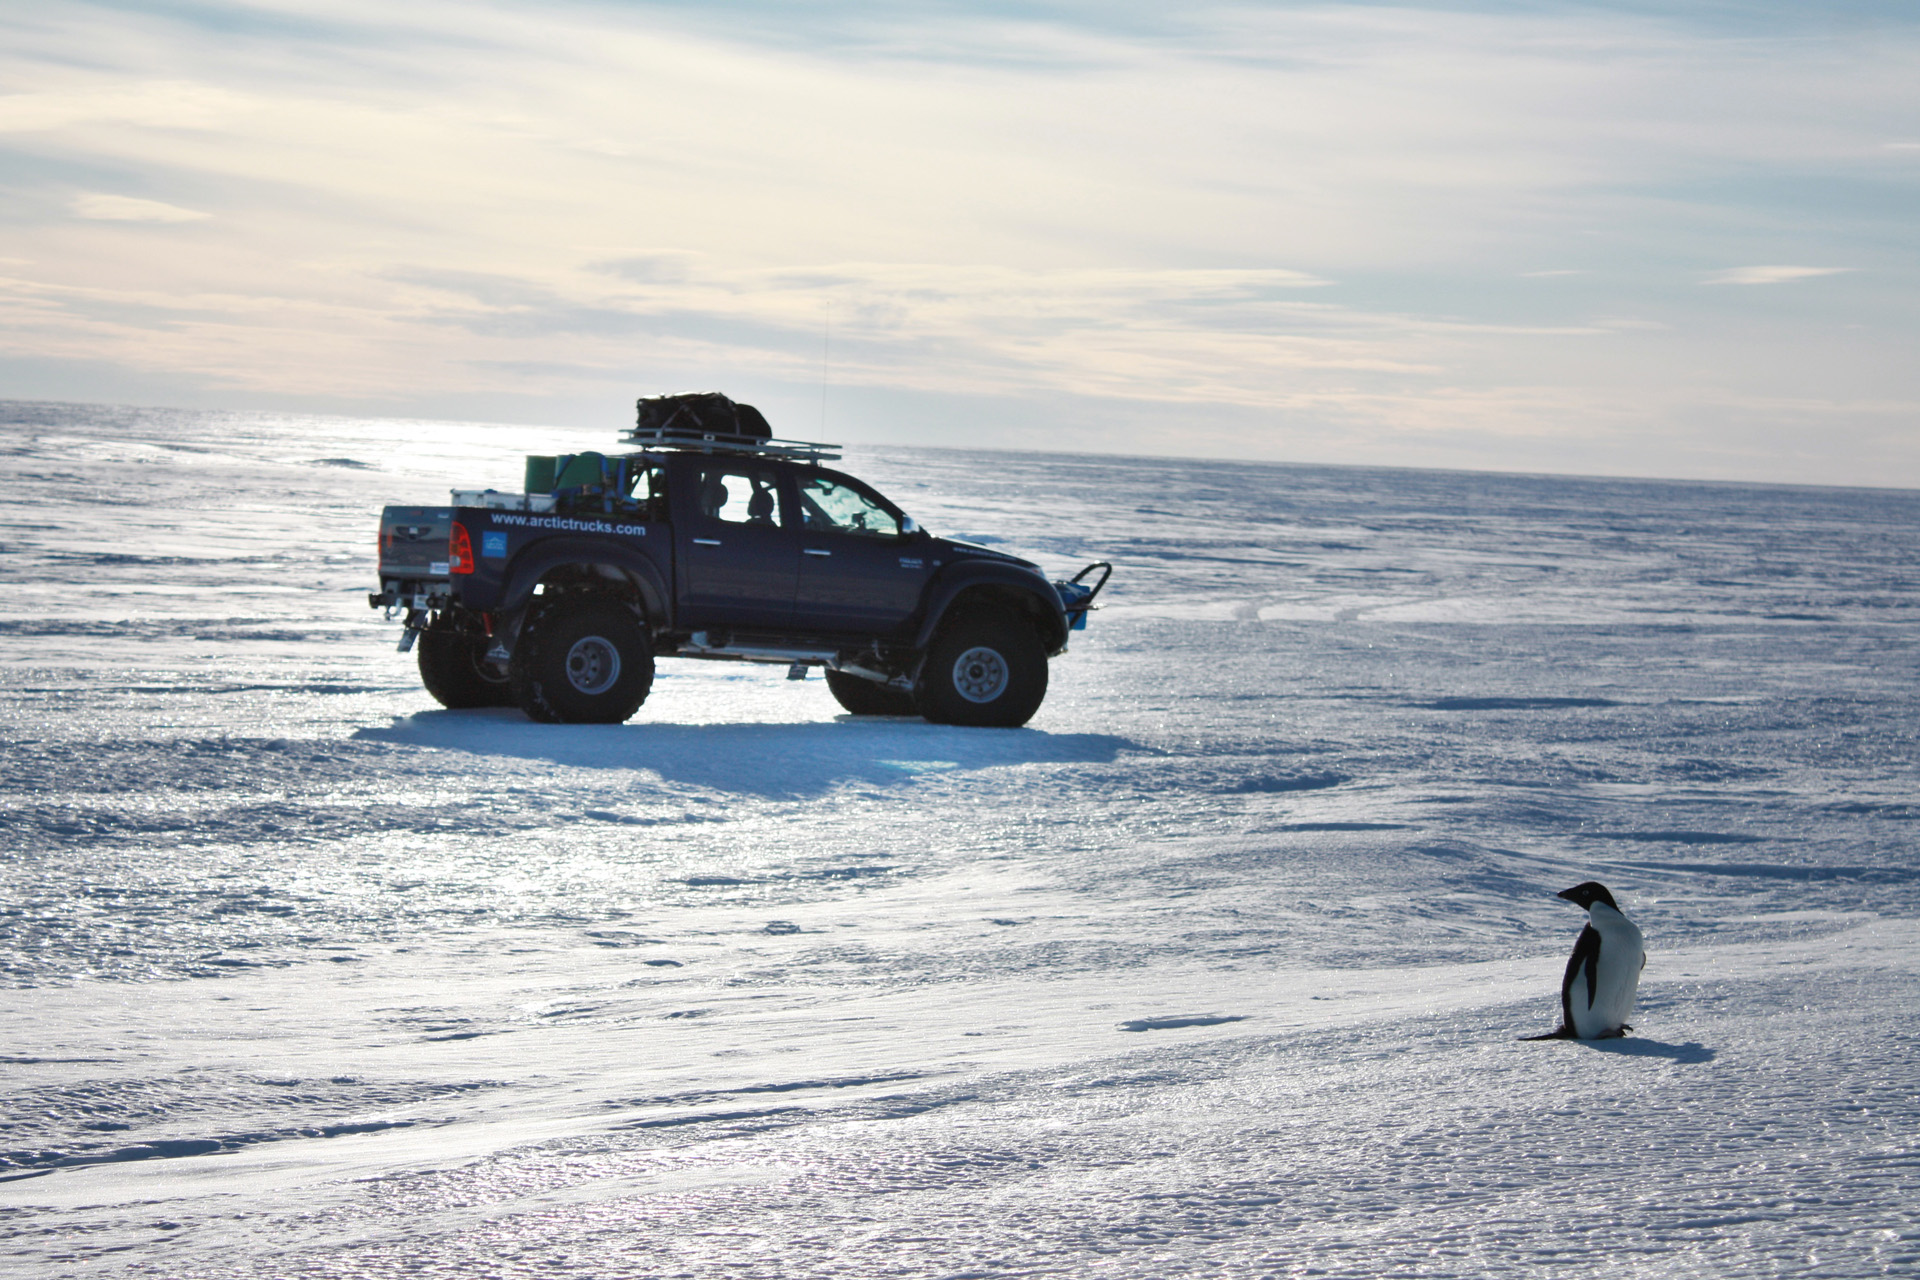 Arctic Trucks Toyota Hilux photos - Photo Gallery Page #2| CarsBase ...